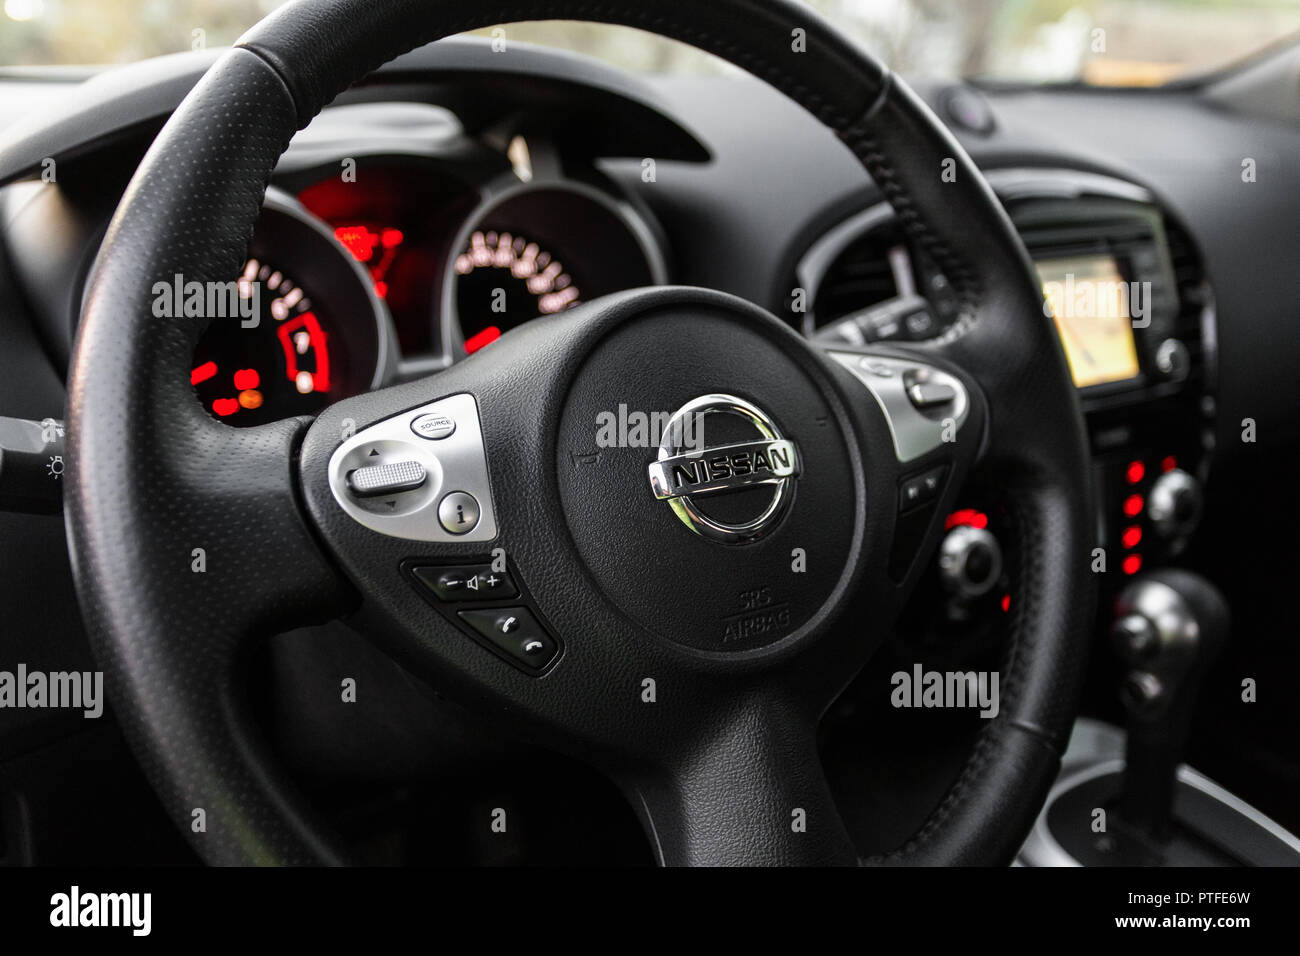 Safety Red Lever Stock Photos Images Alamy Nissan Juke Fuse Box Location Dnipro Ukraine April 12 2016 Interior Wheel Close